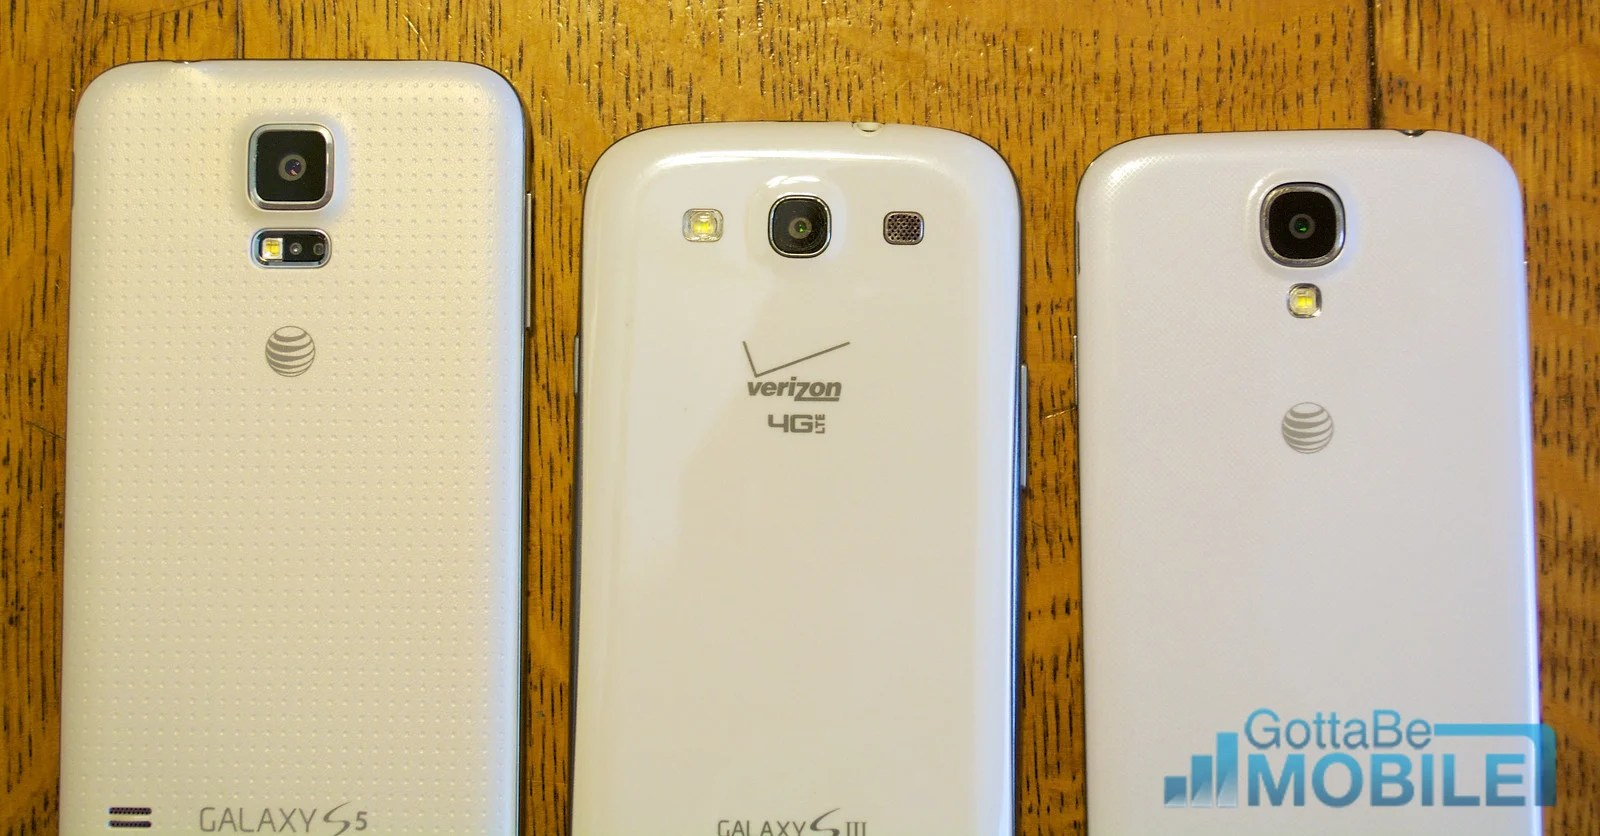 7 Common Galaxy S3 Problems & How to Fix Them